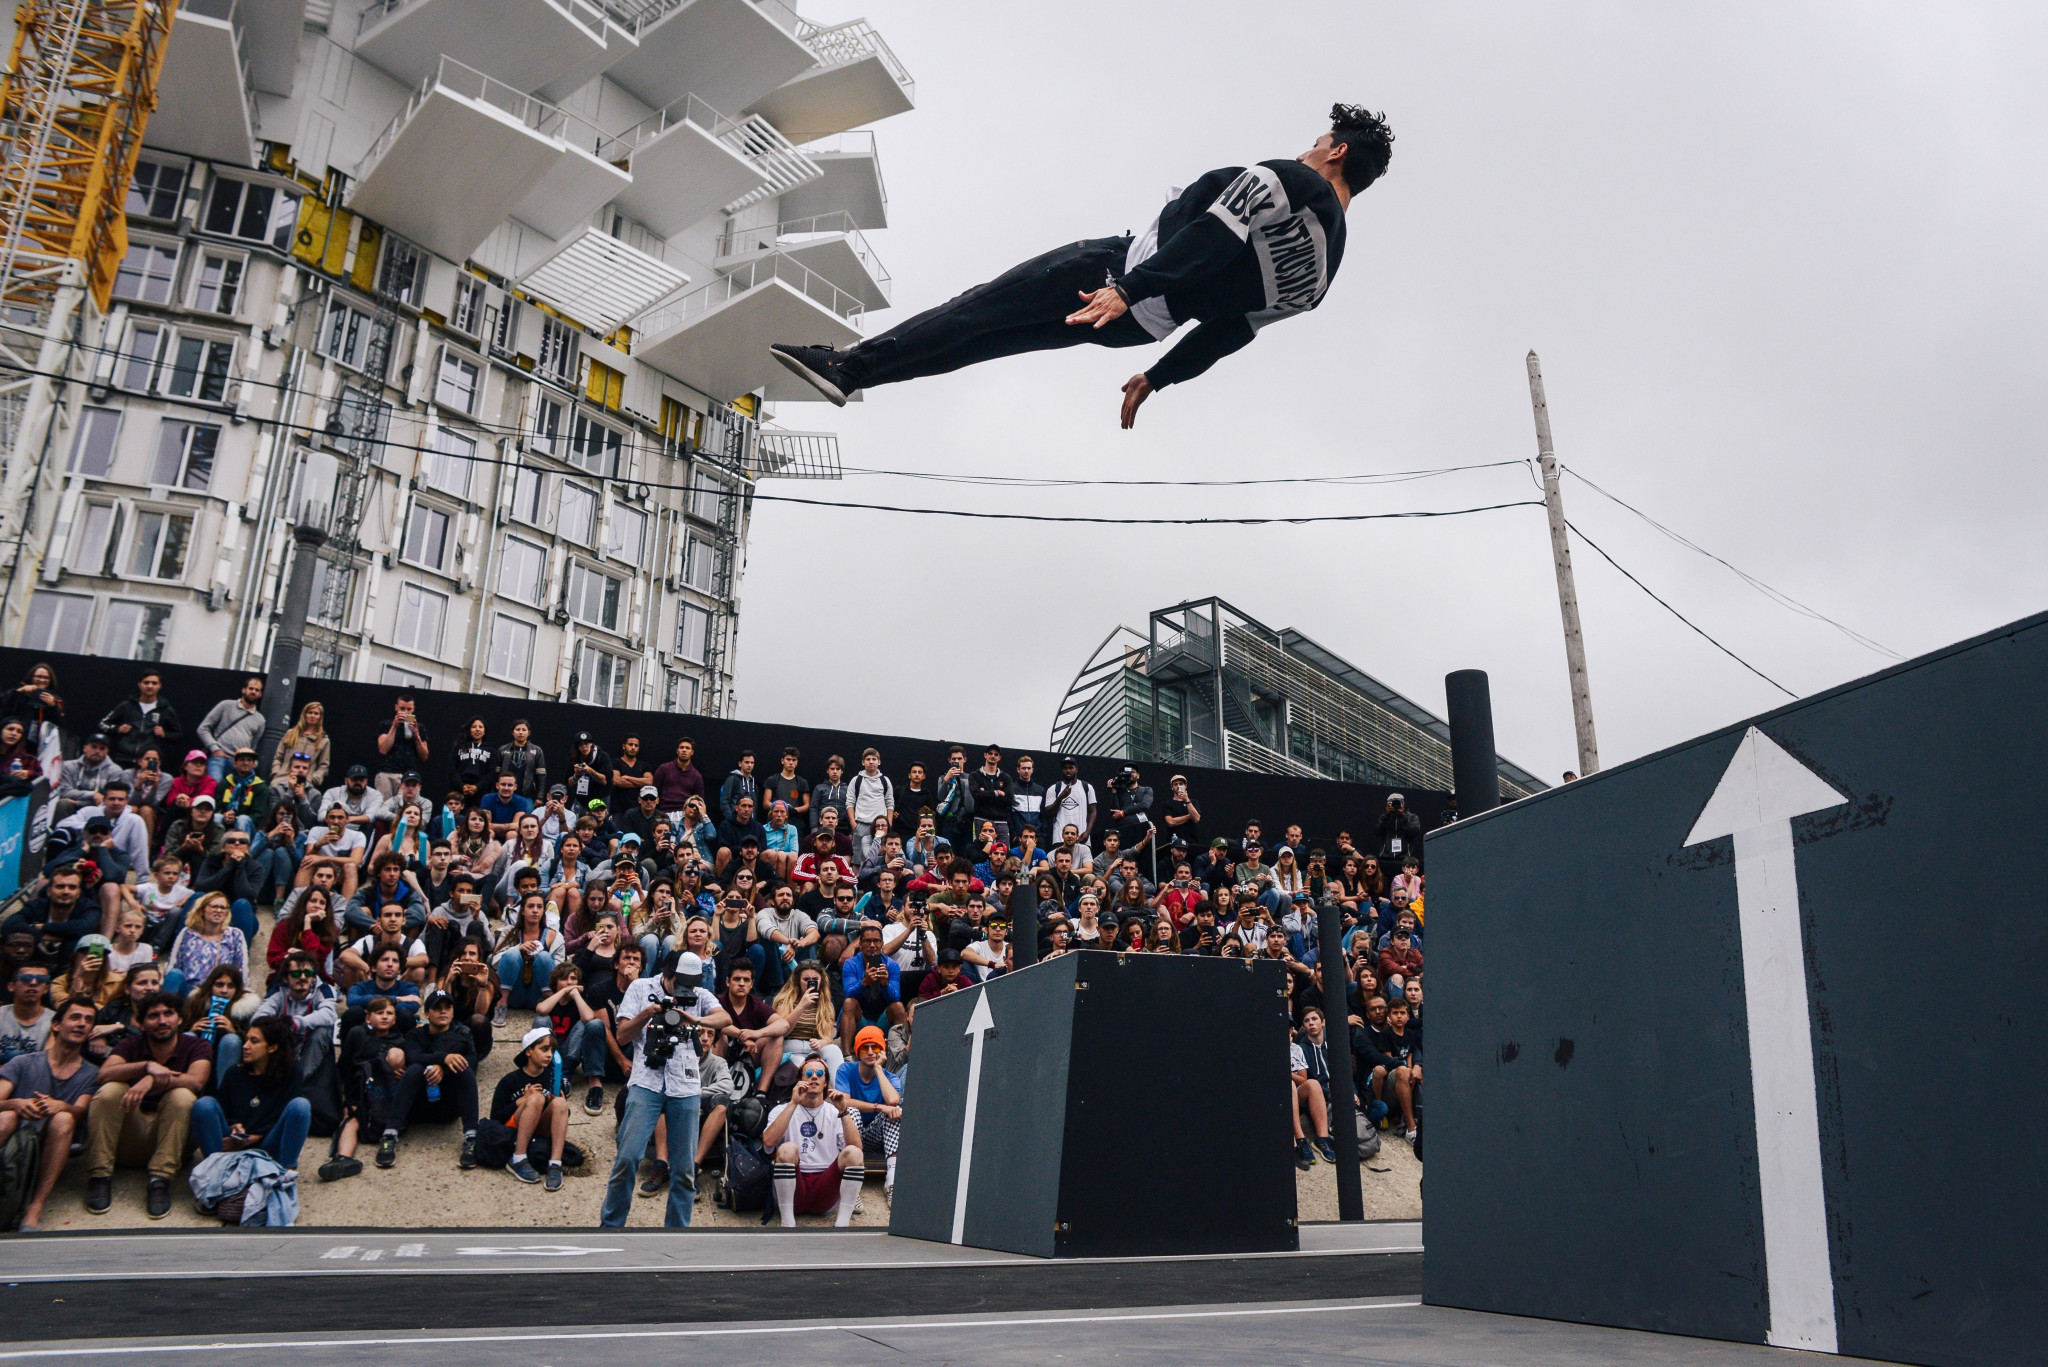 The inaugural Urban Sports Summit was held at the International Festival of Extreme Sports World Series event in Montpellier, France ©Getty Images